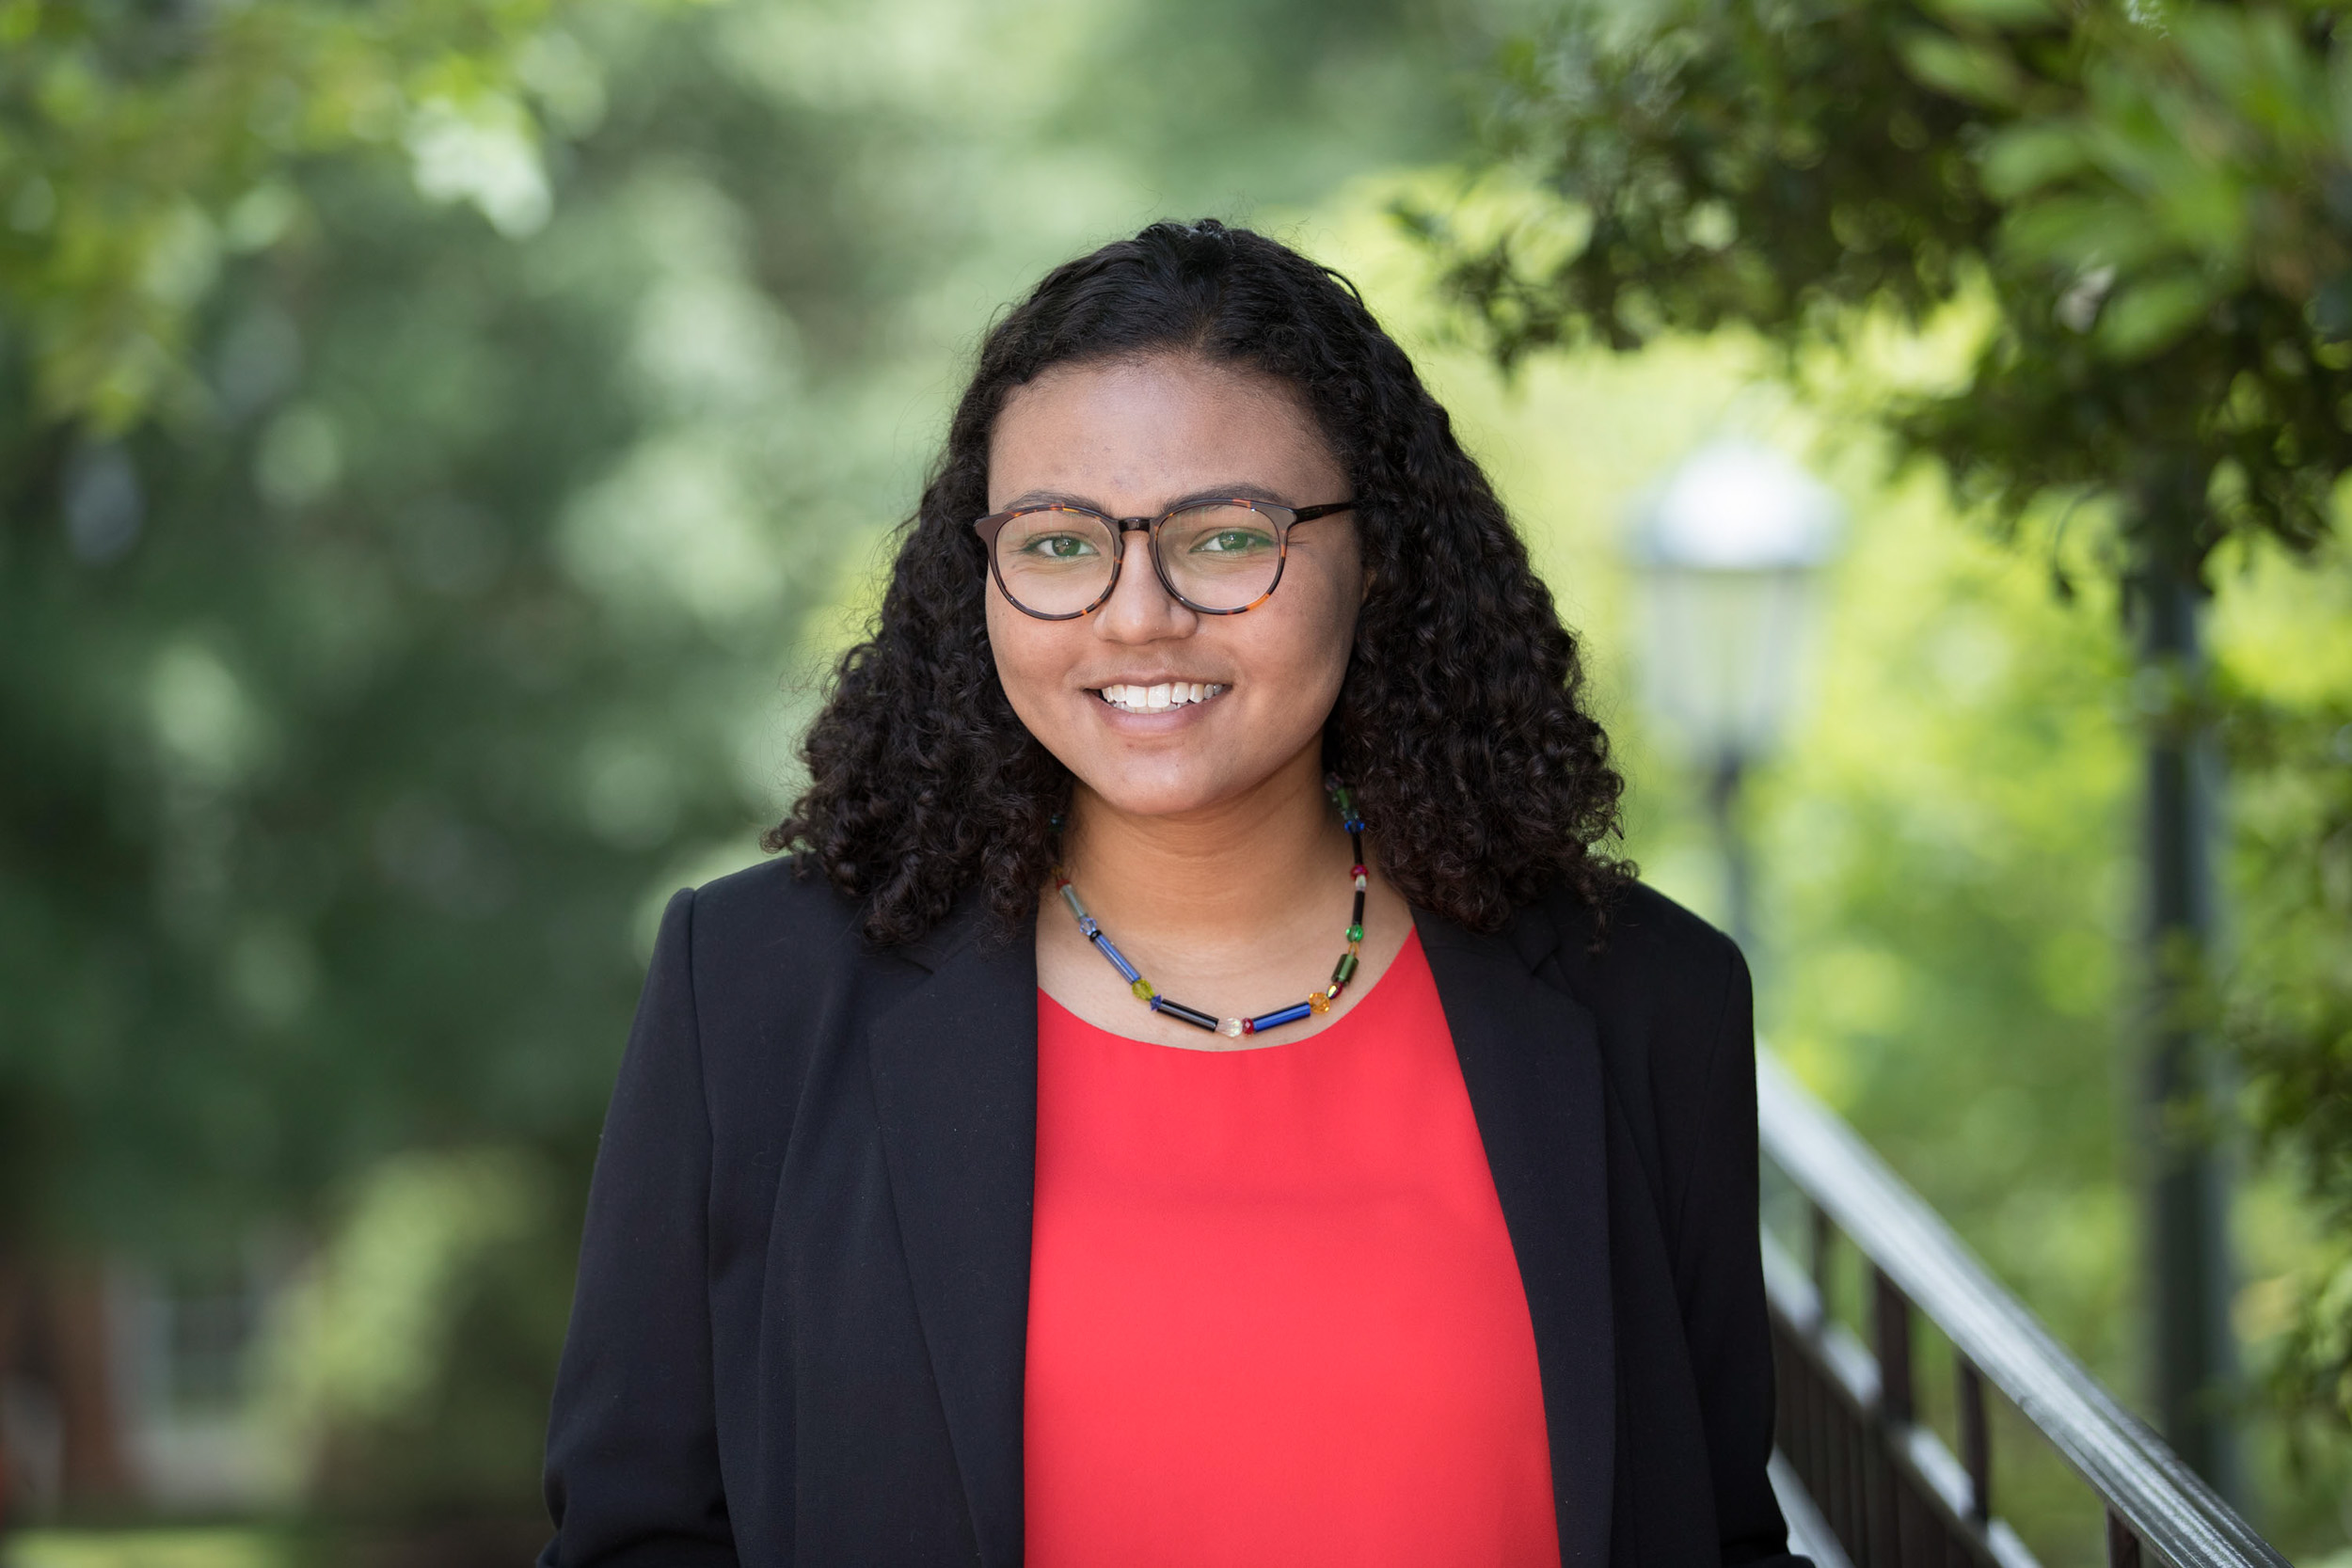 Virginia Chambers is a rising fourth-year student double-majoring in government and art history, with an urban and environmental planning minor.